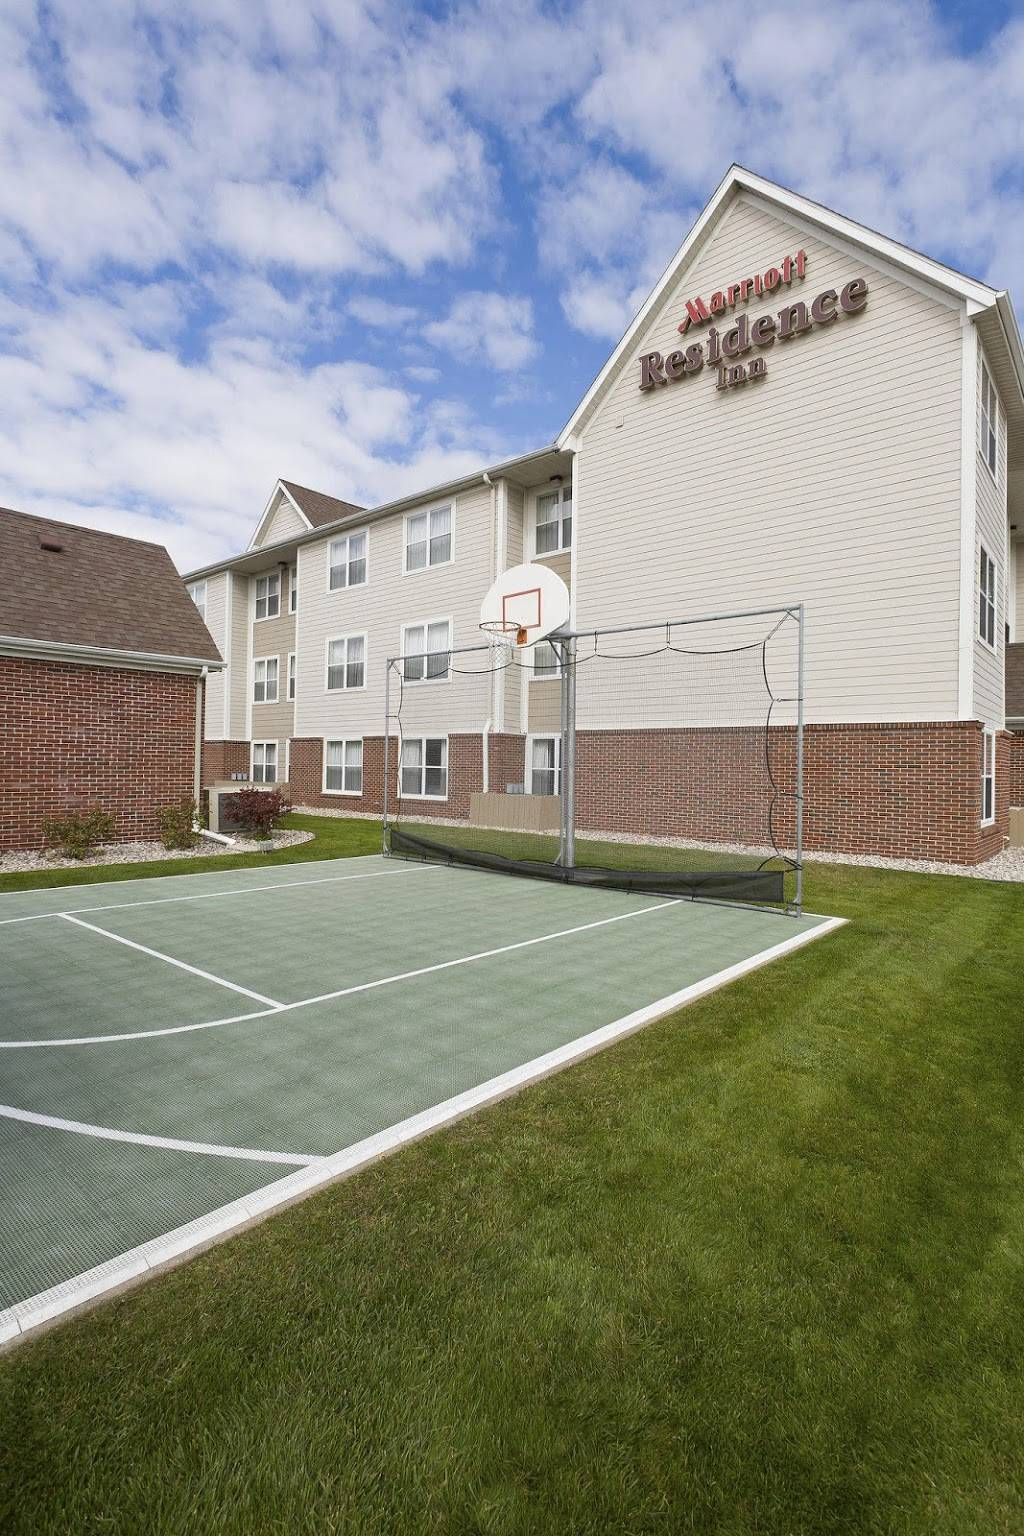 Residence Inn by Marriott Madison East - lodging  | Photo 6 of 10 | Address: 4862 Hayes Rd, Madison, WI 53704, USA | Phone: (608) 244-5047